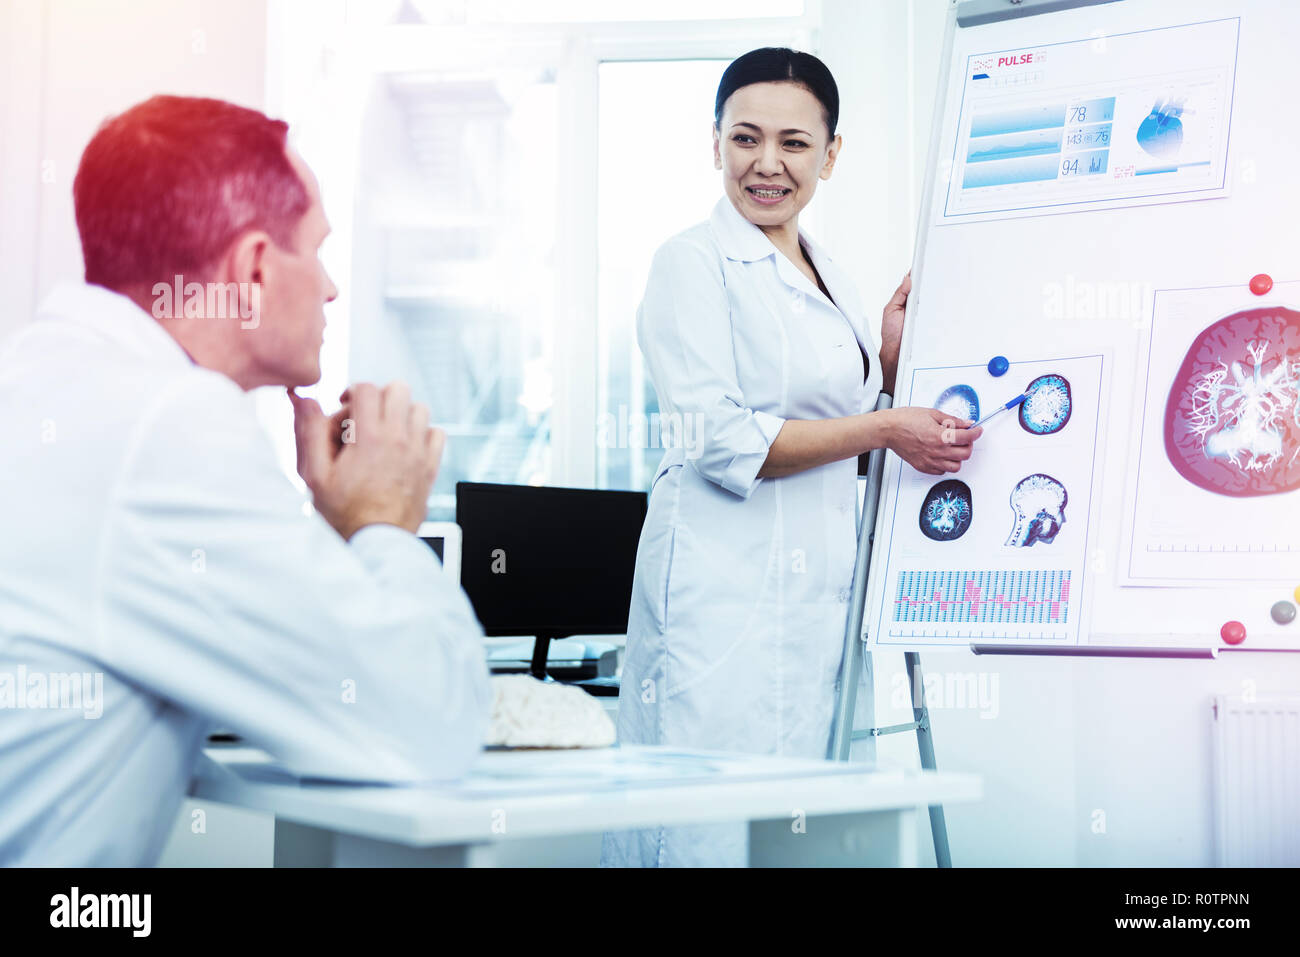 Positive smart woman pointing at the brain image - Stock Image